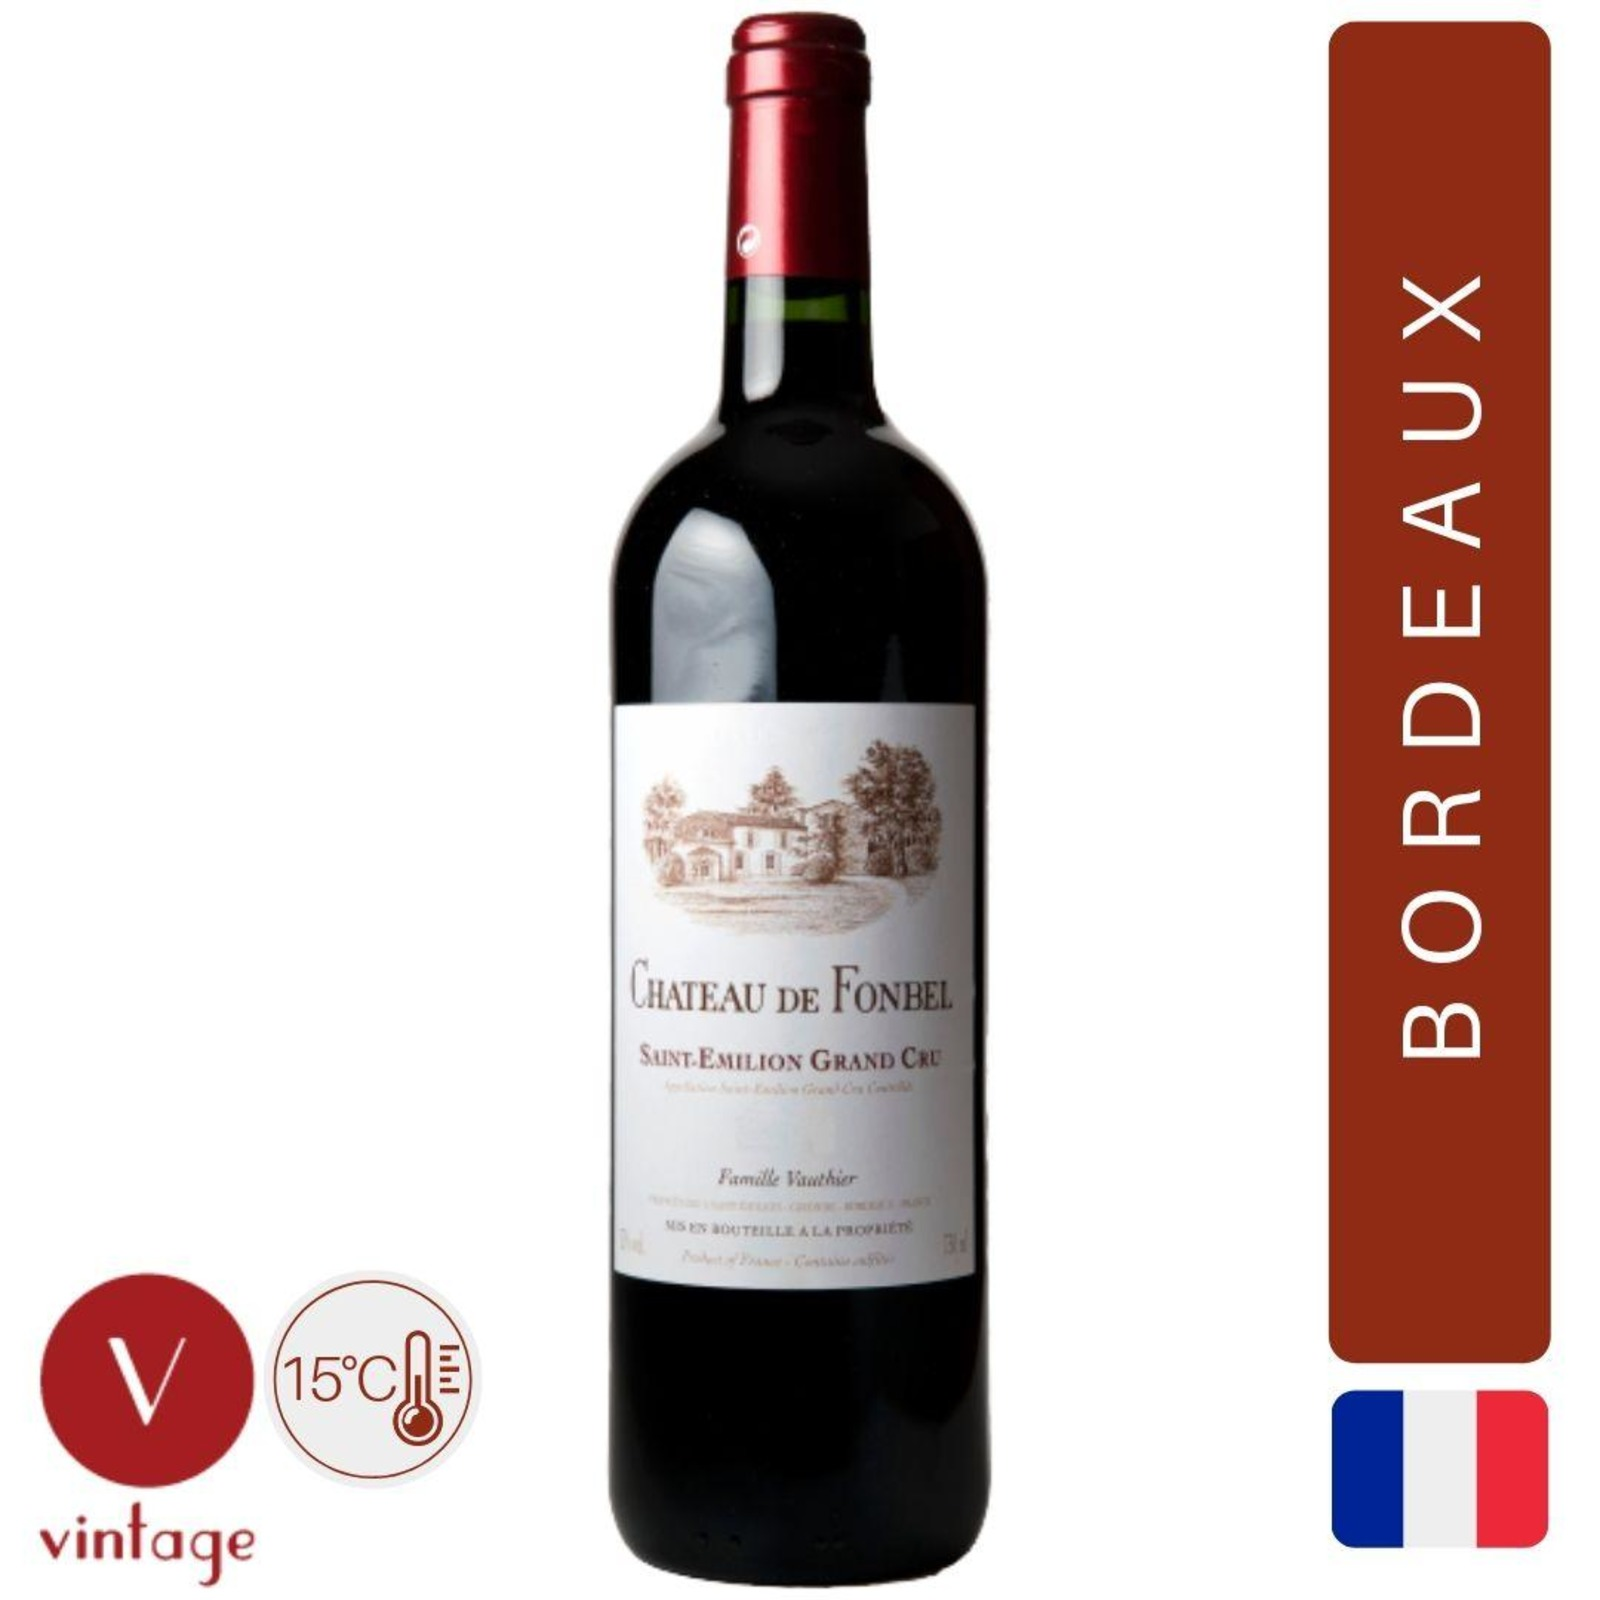 Chateau Fonbel - Saint Emilion Grand Cru - Bordeaux Red Wine